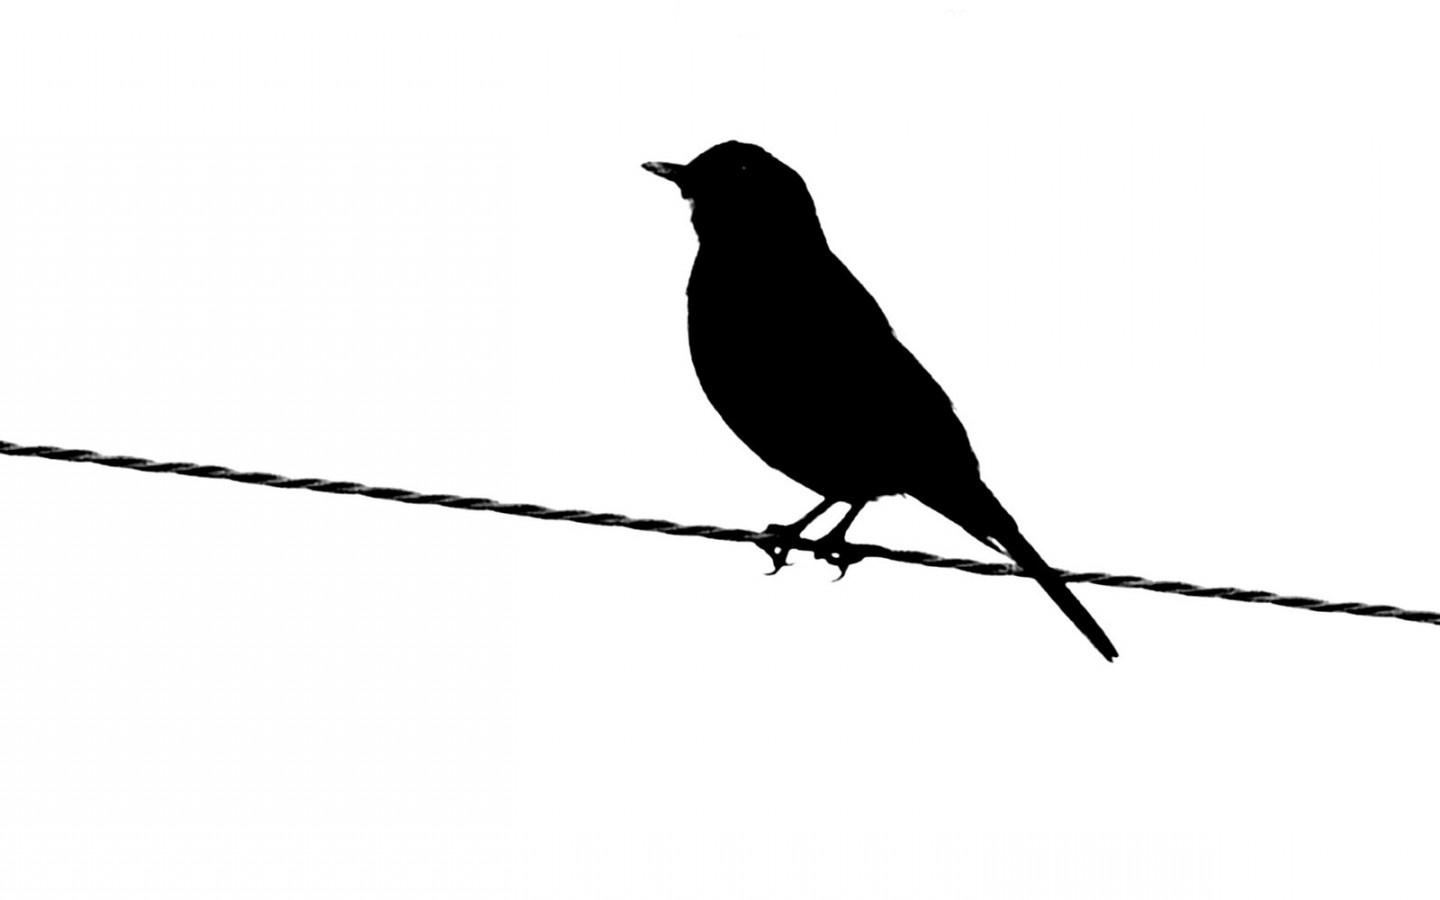 1440x900 High Quality Bird Silhouette Wallpaper Full Hd Pictures